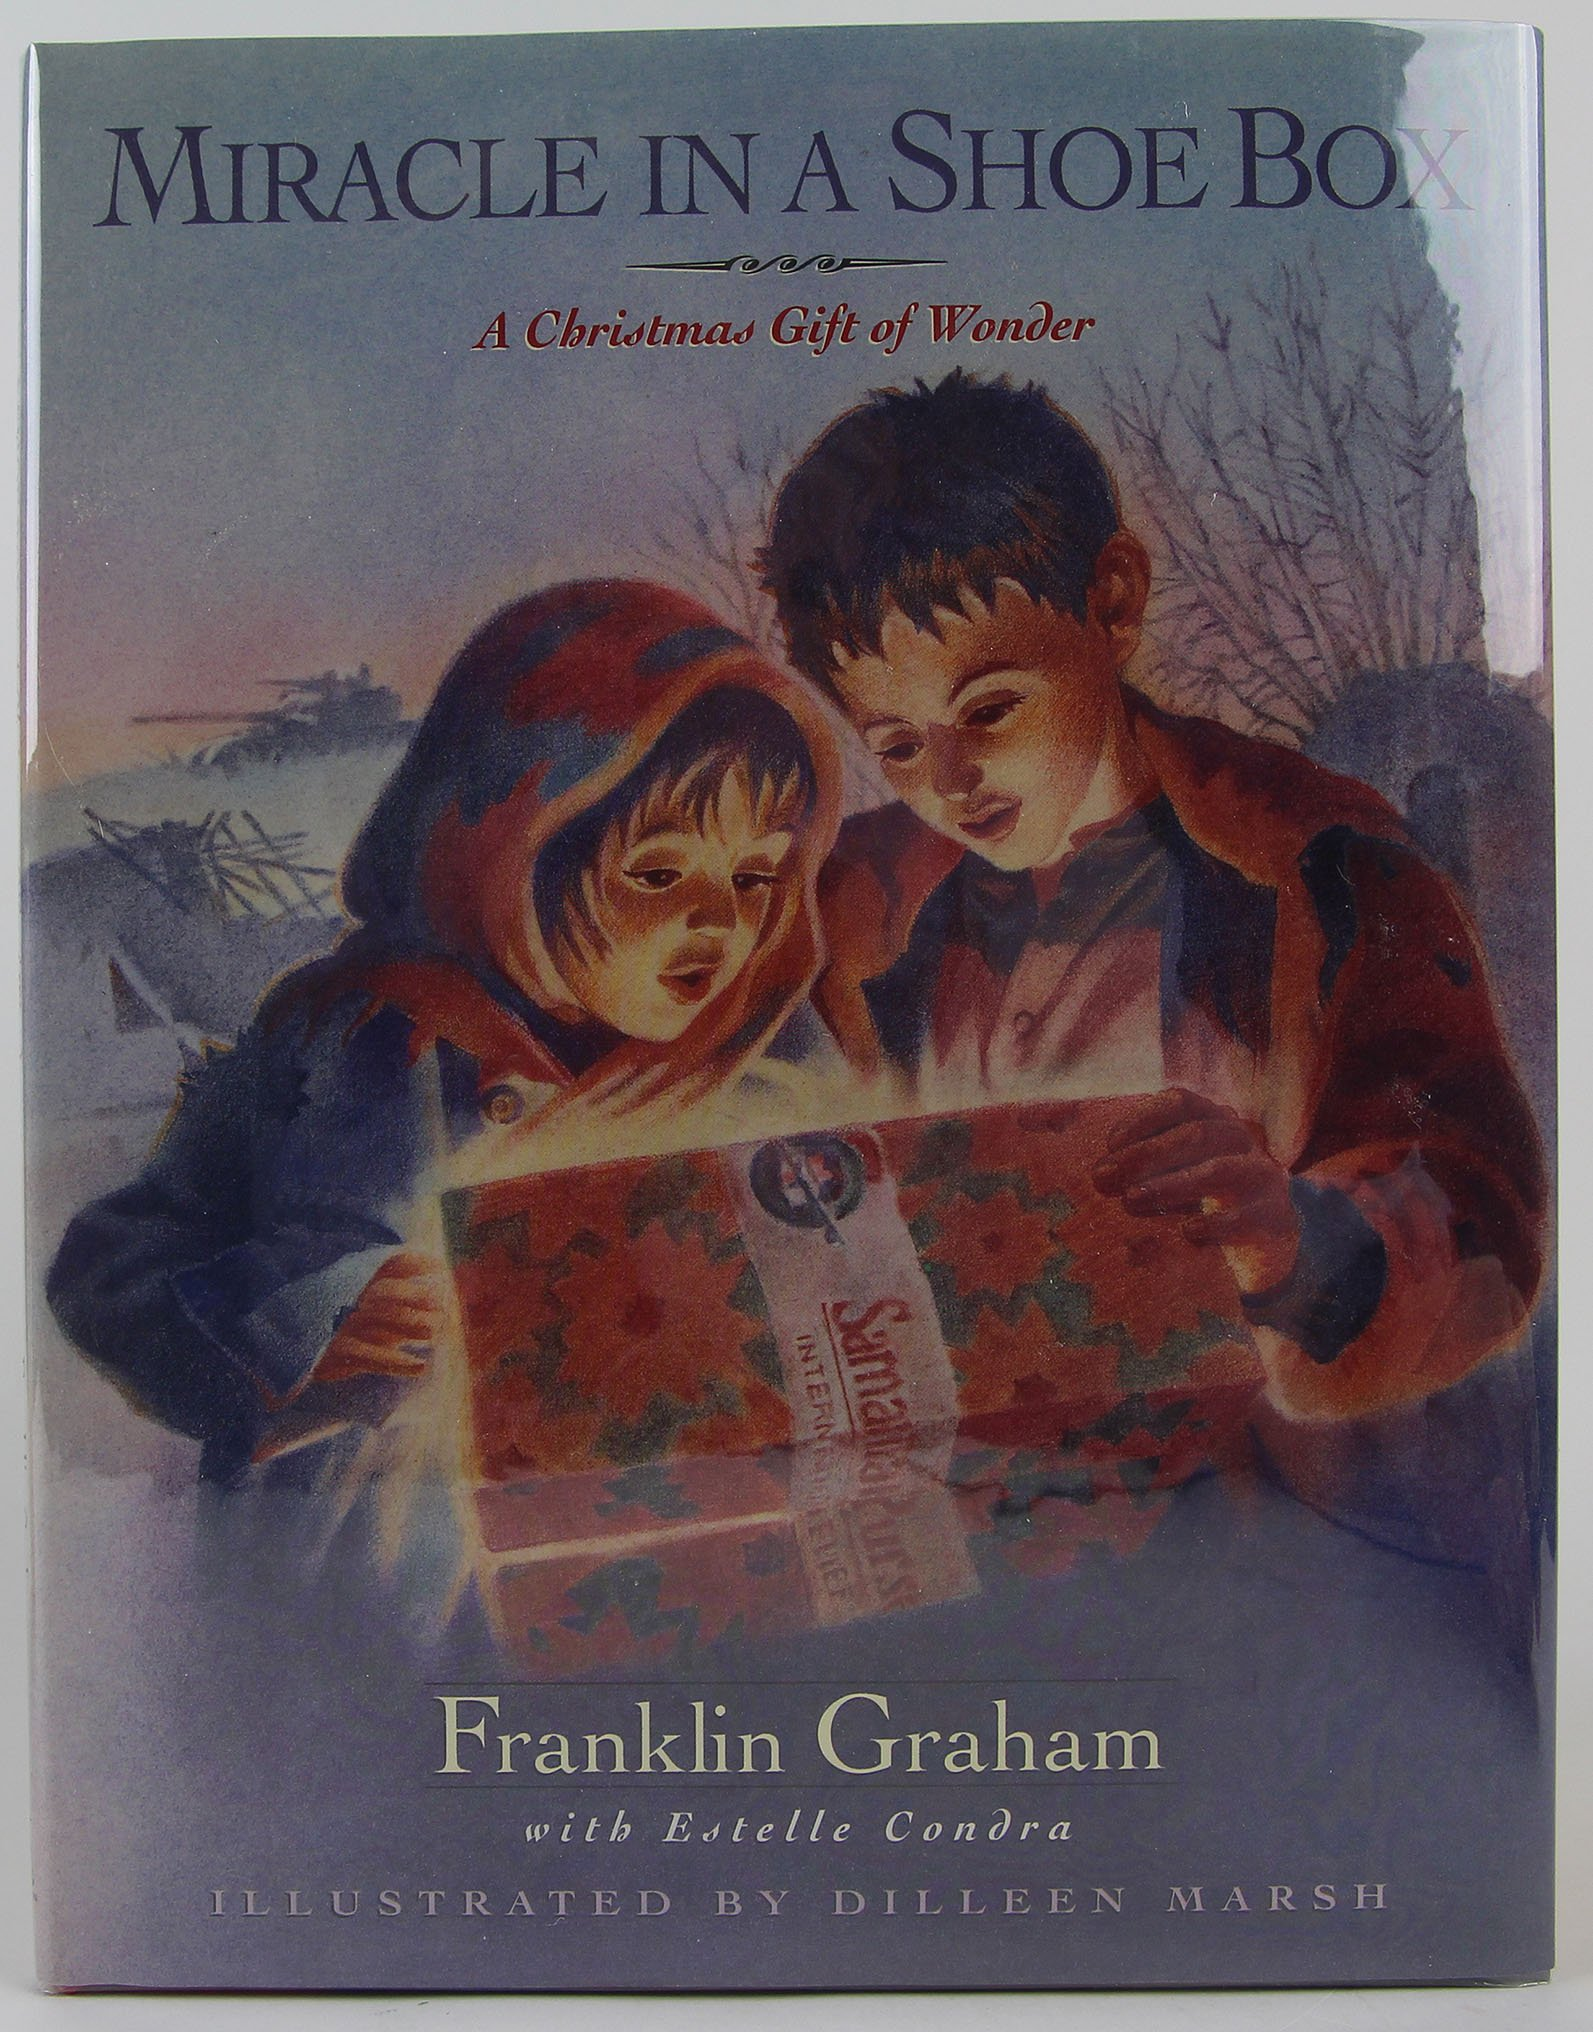 Miracle in a Shoe Box: A Christmas Gift of Wonder